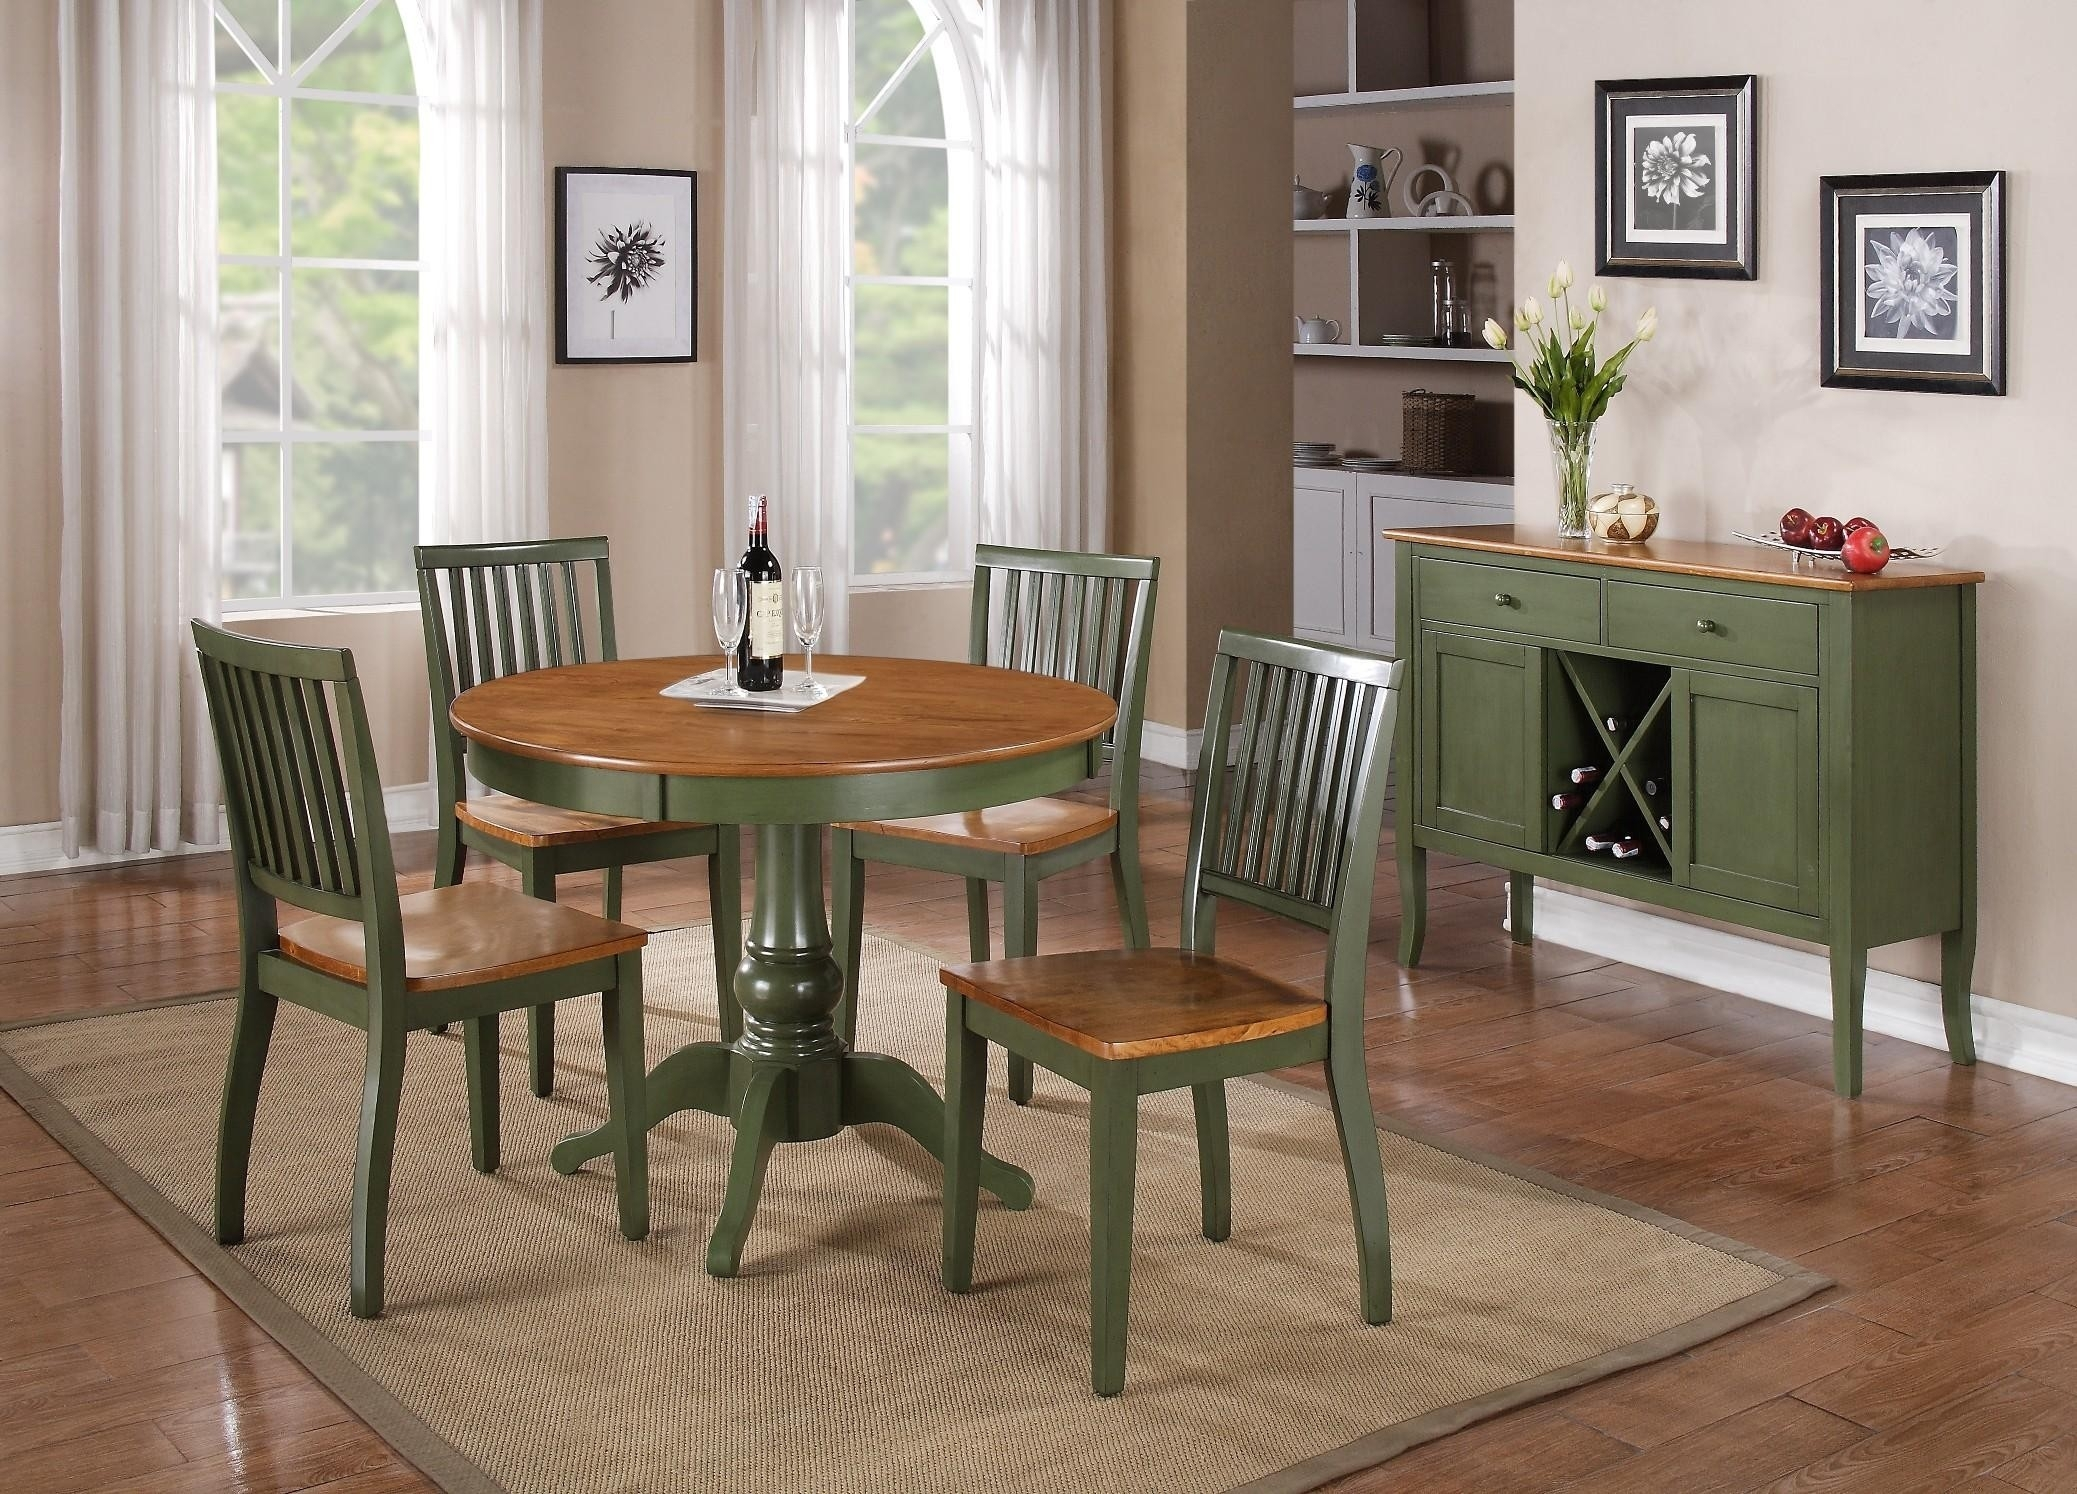 Buy Candice Round Pedestal Dining Room Setsteve Silver From Www Pertaining To Best And Newest Candice Ii Round Dining Tables (Image 4 of 20)